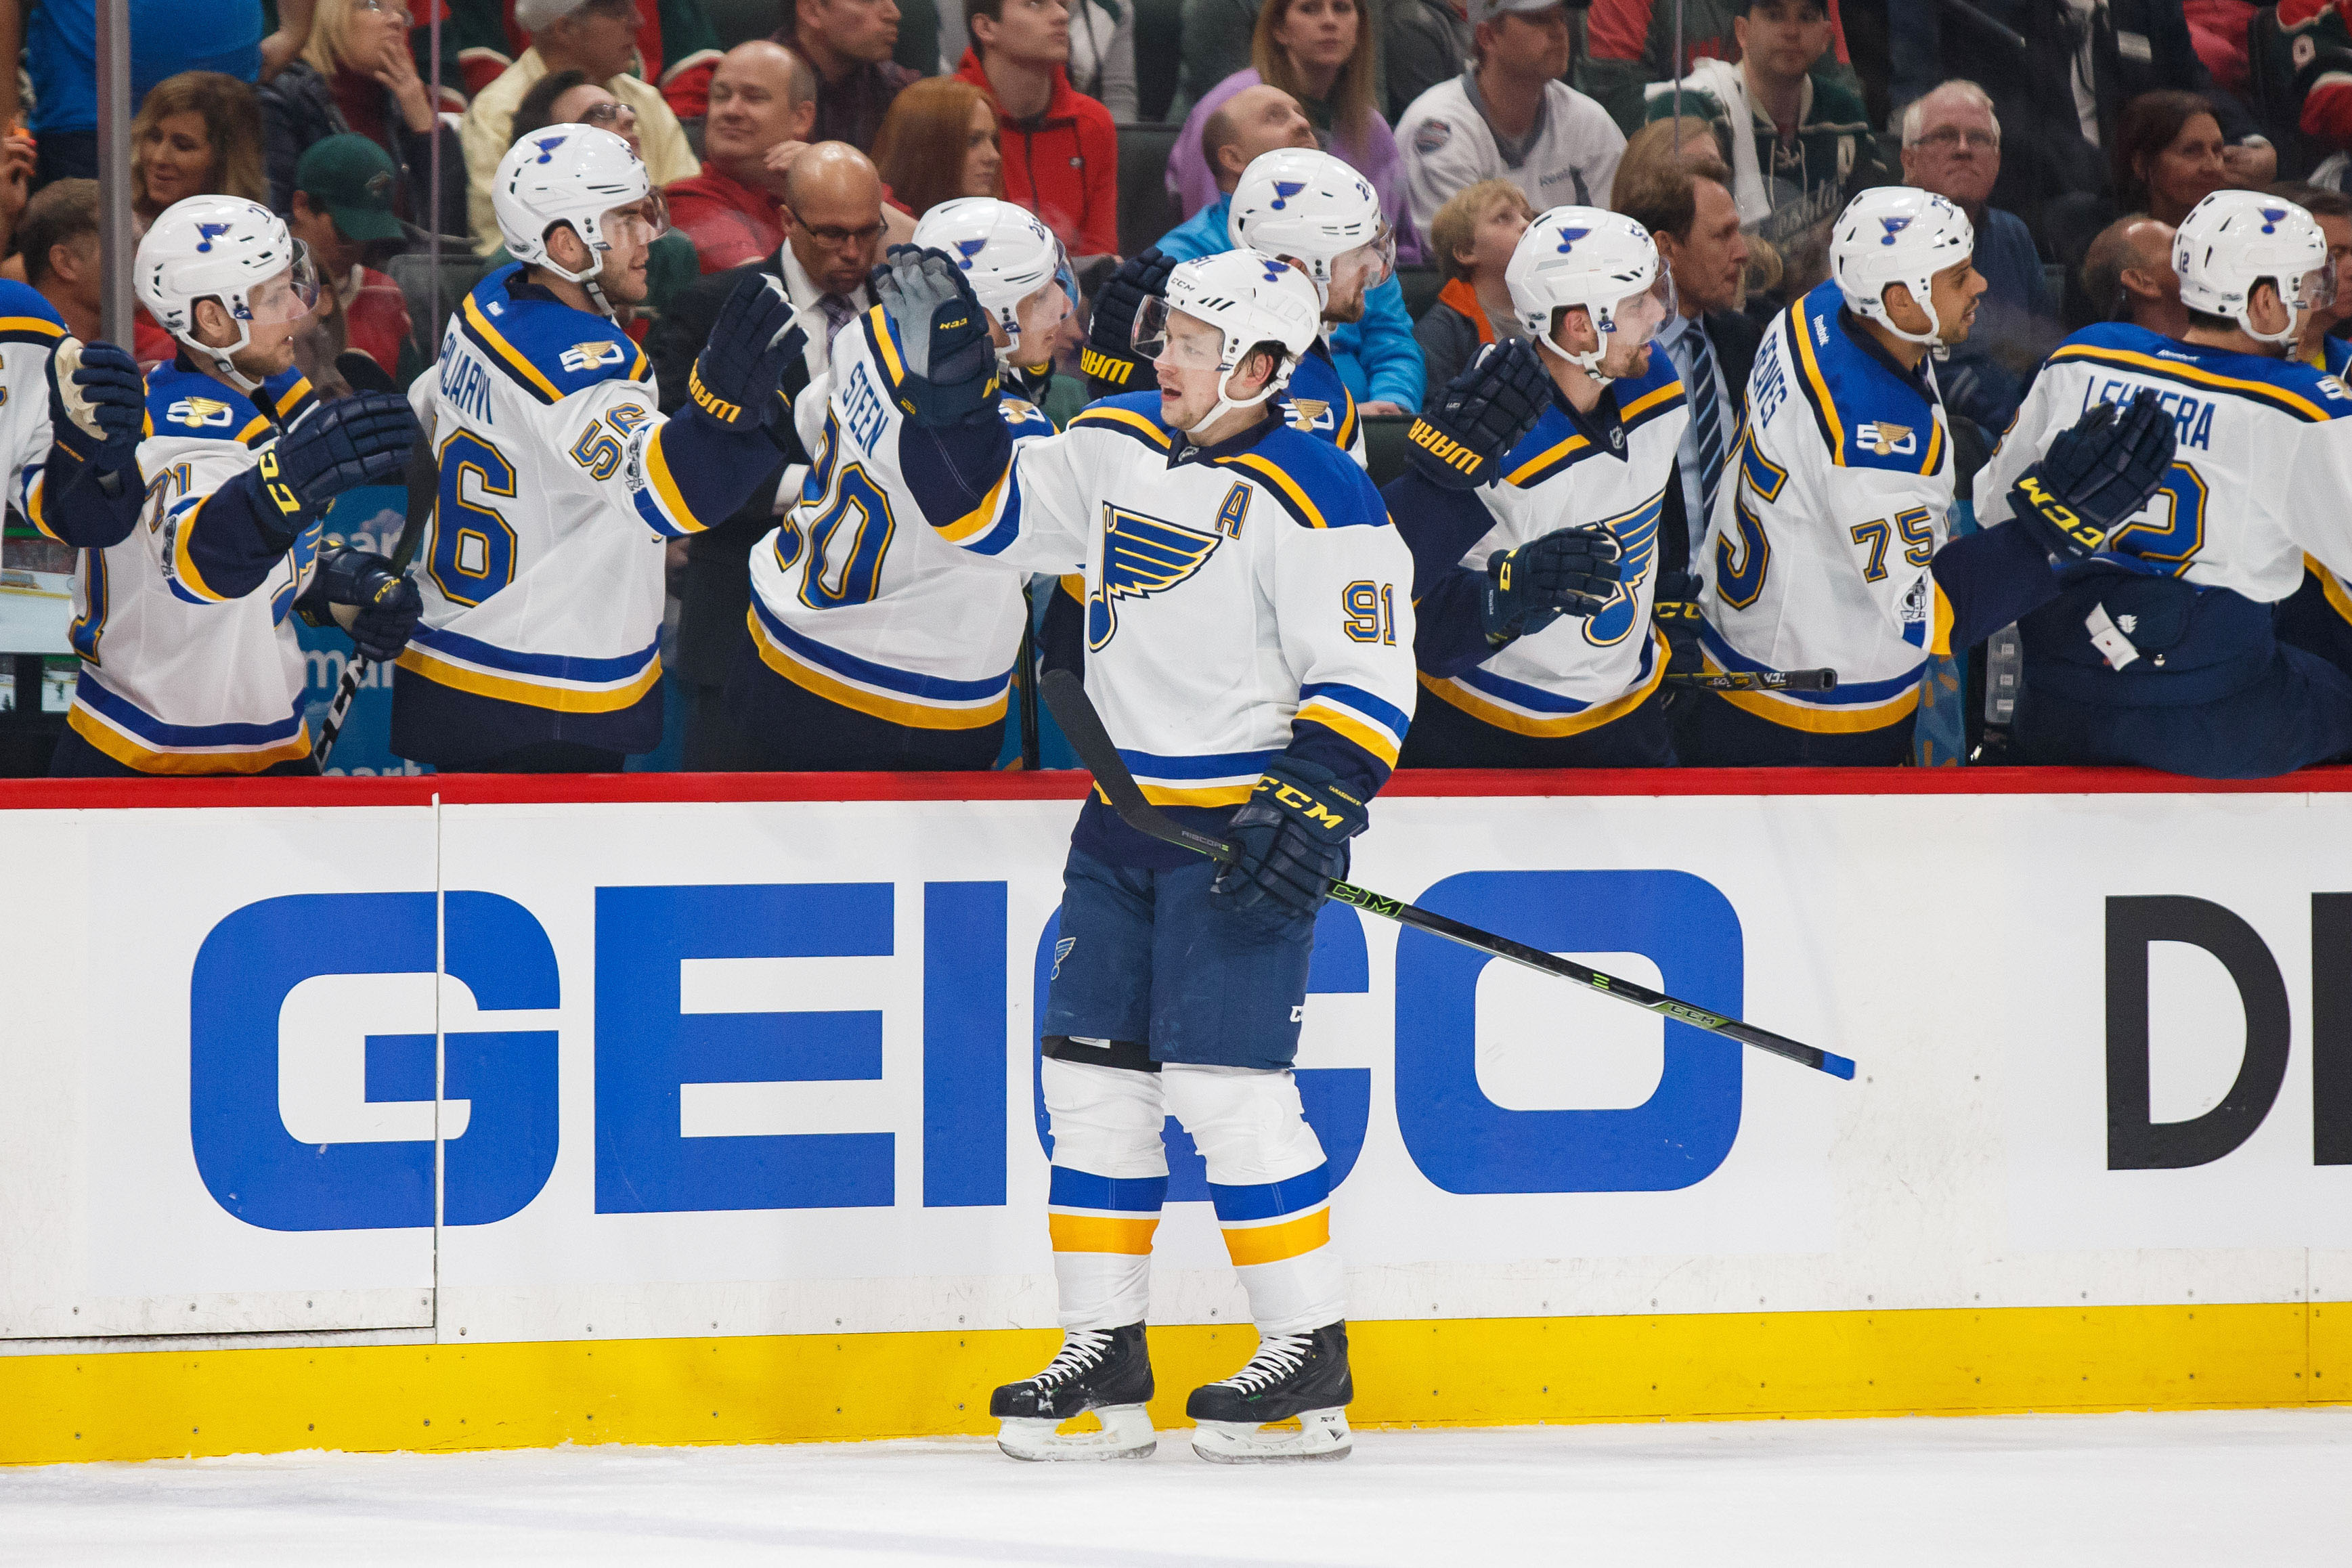 10025194-nhl-stanley-cup-playoffs-st.-louis-blues-at-minnesota-wild